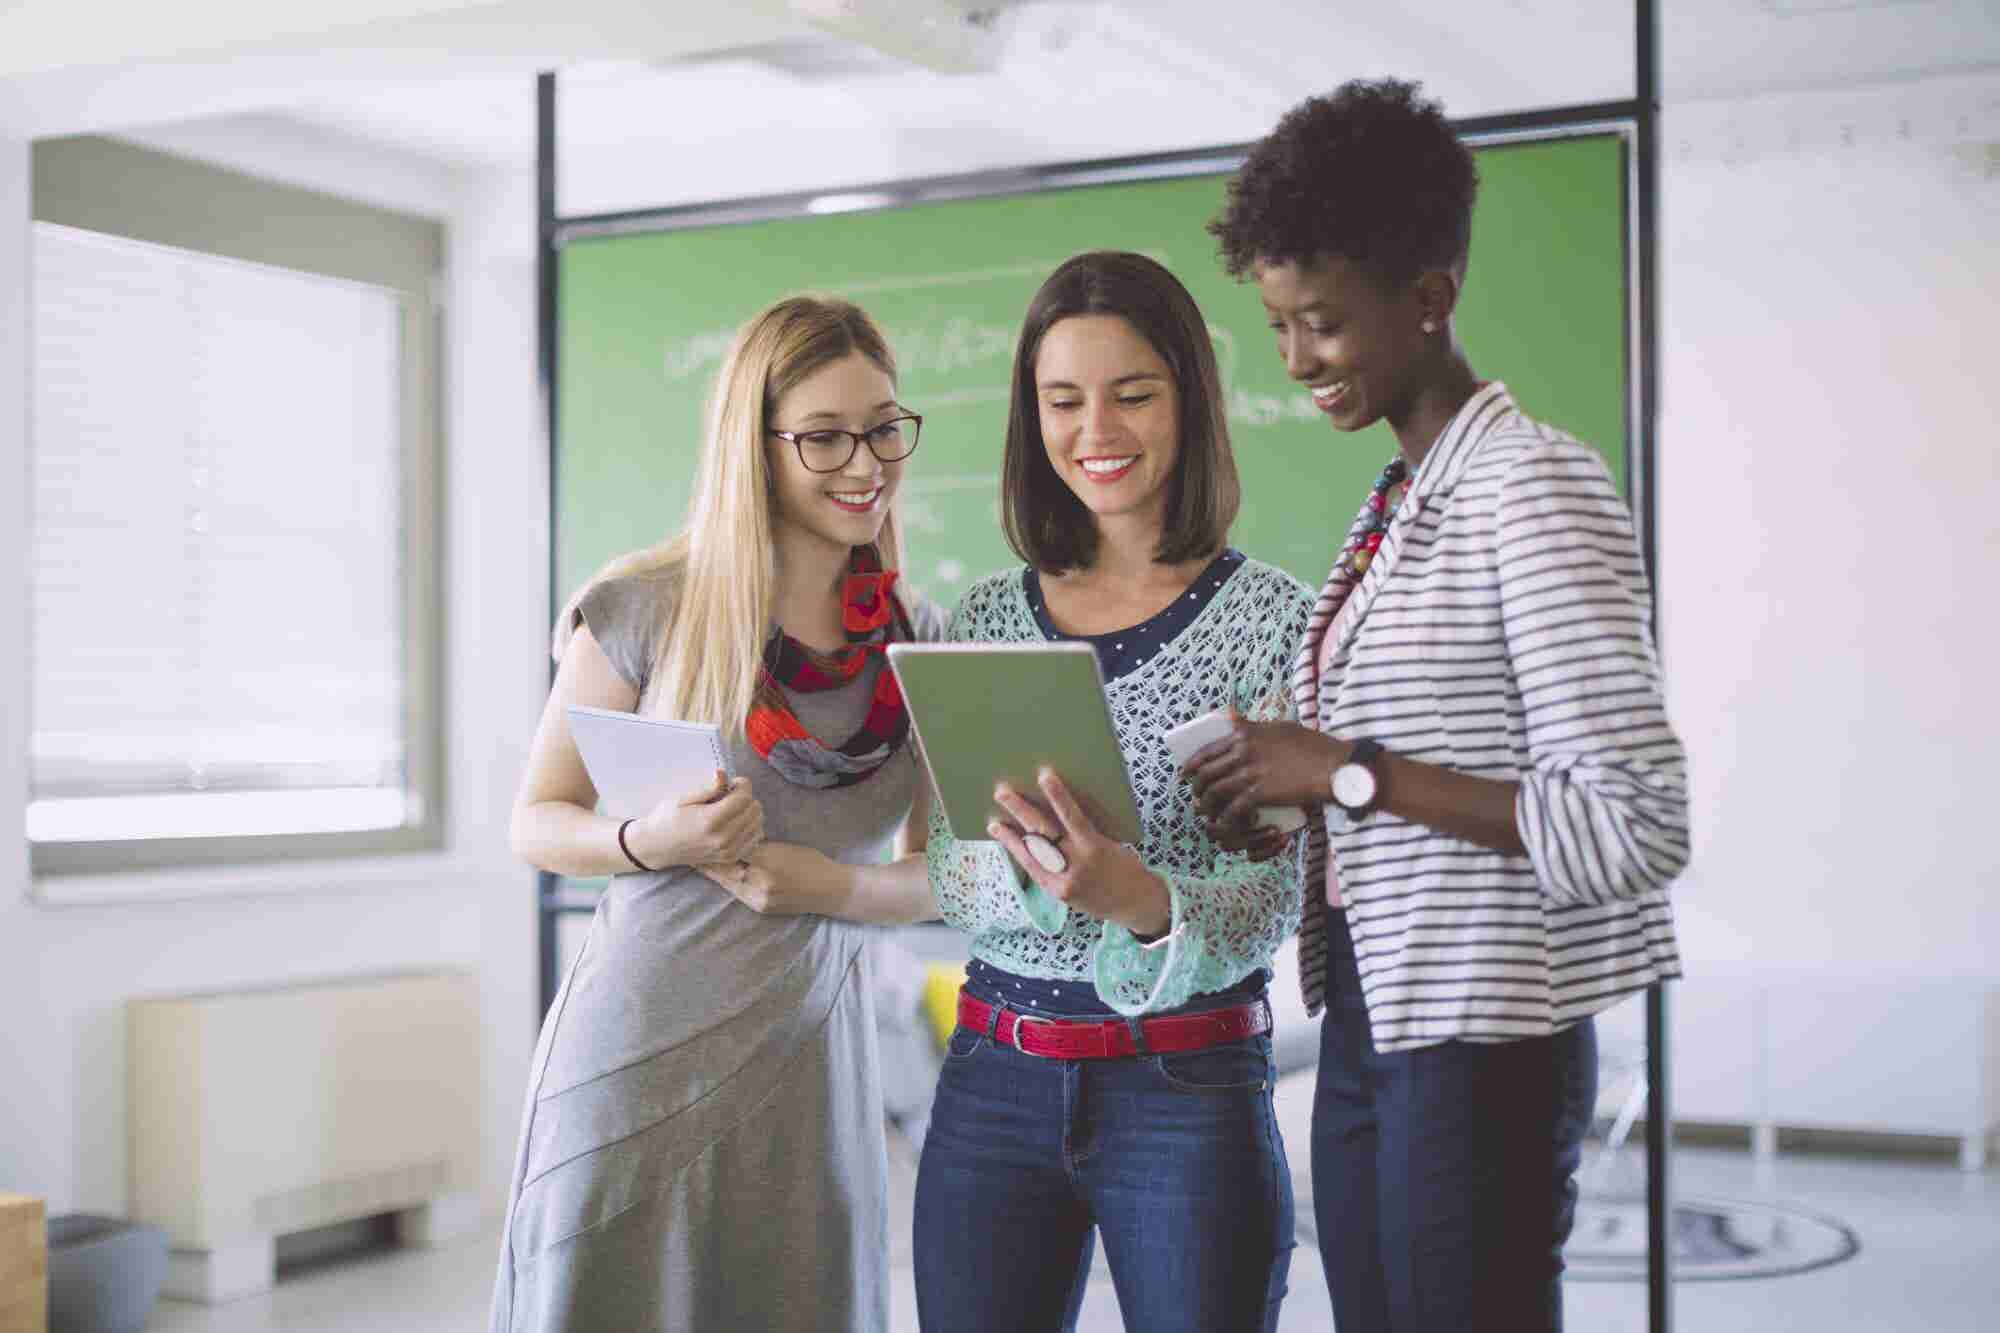 These Are the Top 10 Jobs Generation Z Wants